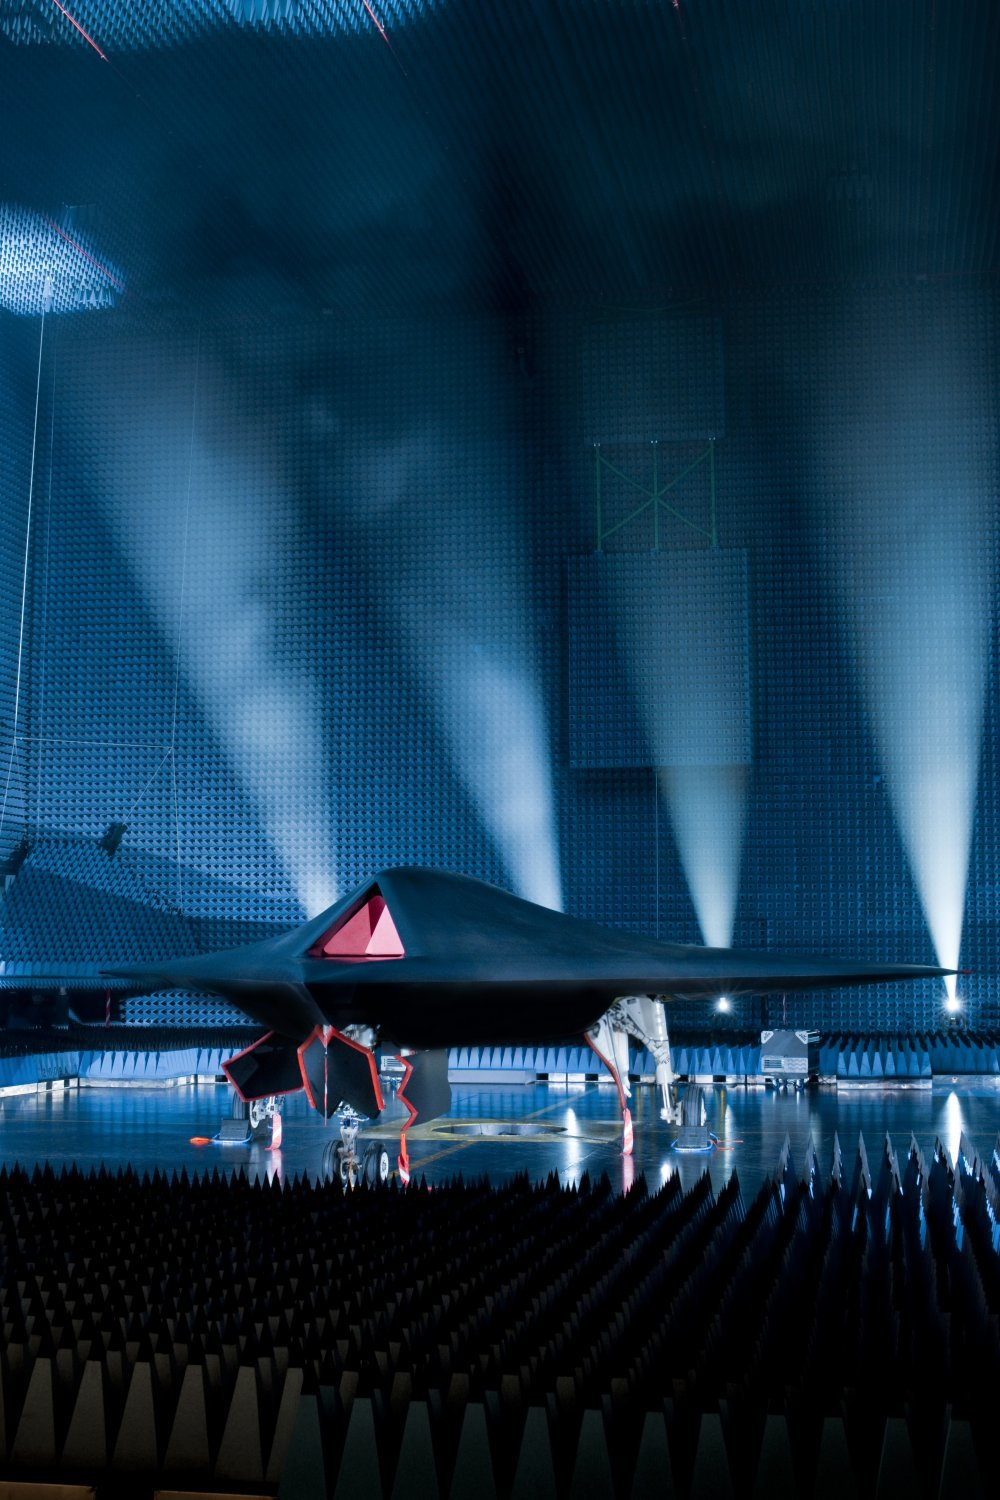 BAE Taranis Jet UCAV Low Observable 3 <!  :en  >BAE Taranis UCAV (Unmanned Combat Air Vehicle): Meet the New Jet Powered, Weaponized, Low Observable, and Autonomous God of Thunder<!  :  >